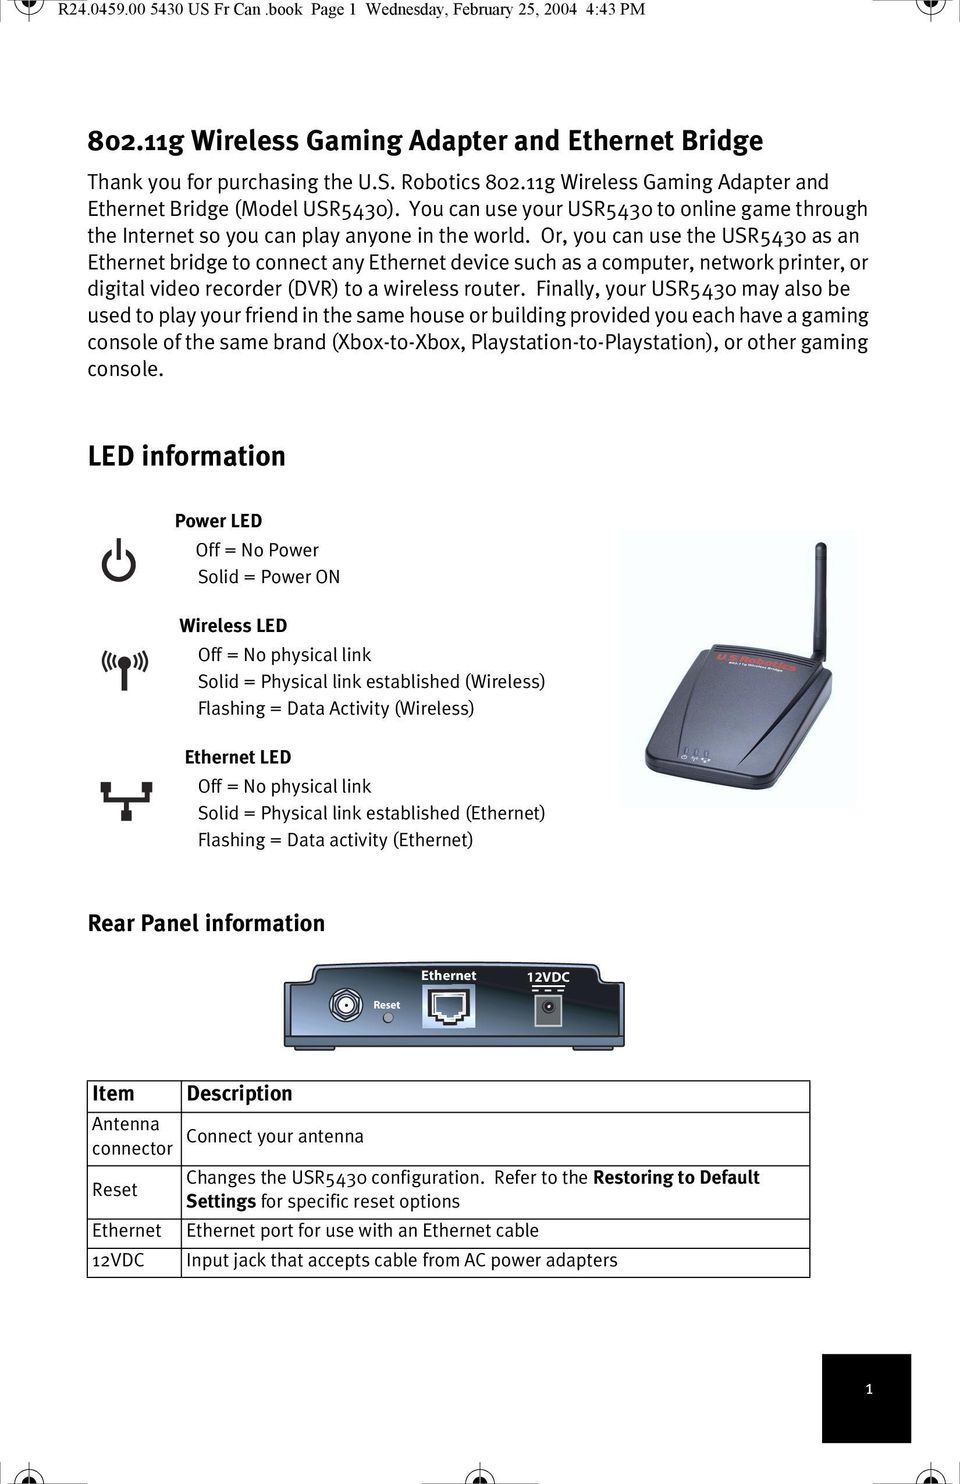 Or, you can use the USR5430 as an Ethernet bridge to connect any Ethernet device such as a computer, network printer, or digital video recorder (DVR) to a wireless router.